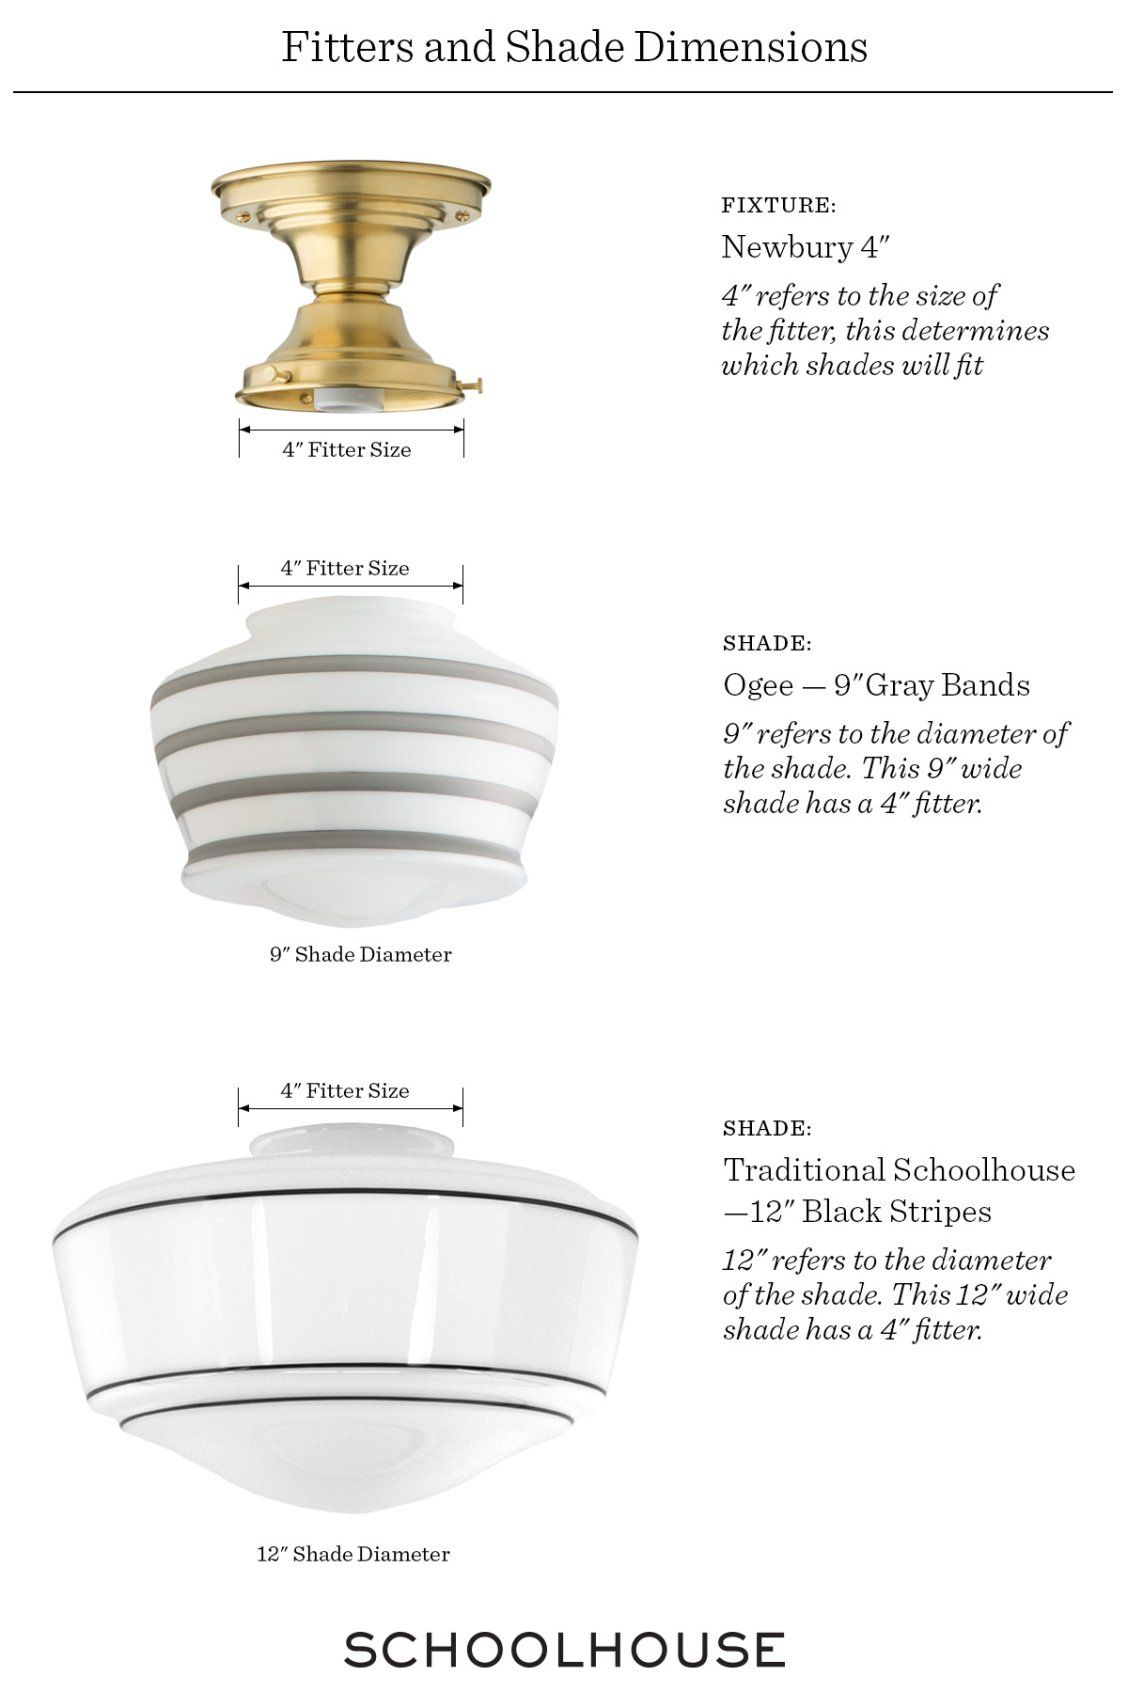 Fitters and shade dimensions the anatomy of a fixture explained schoolhouse